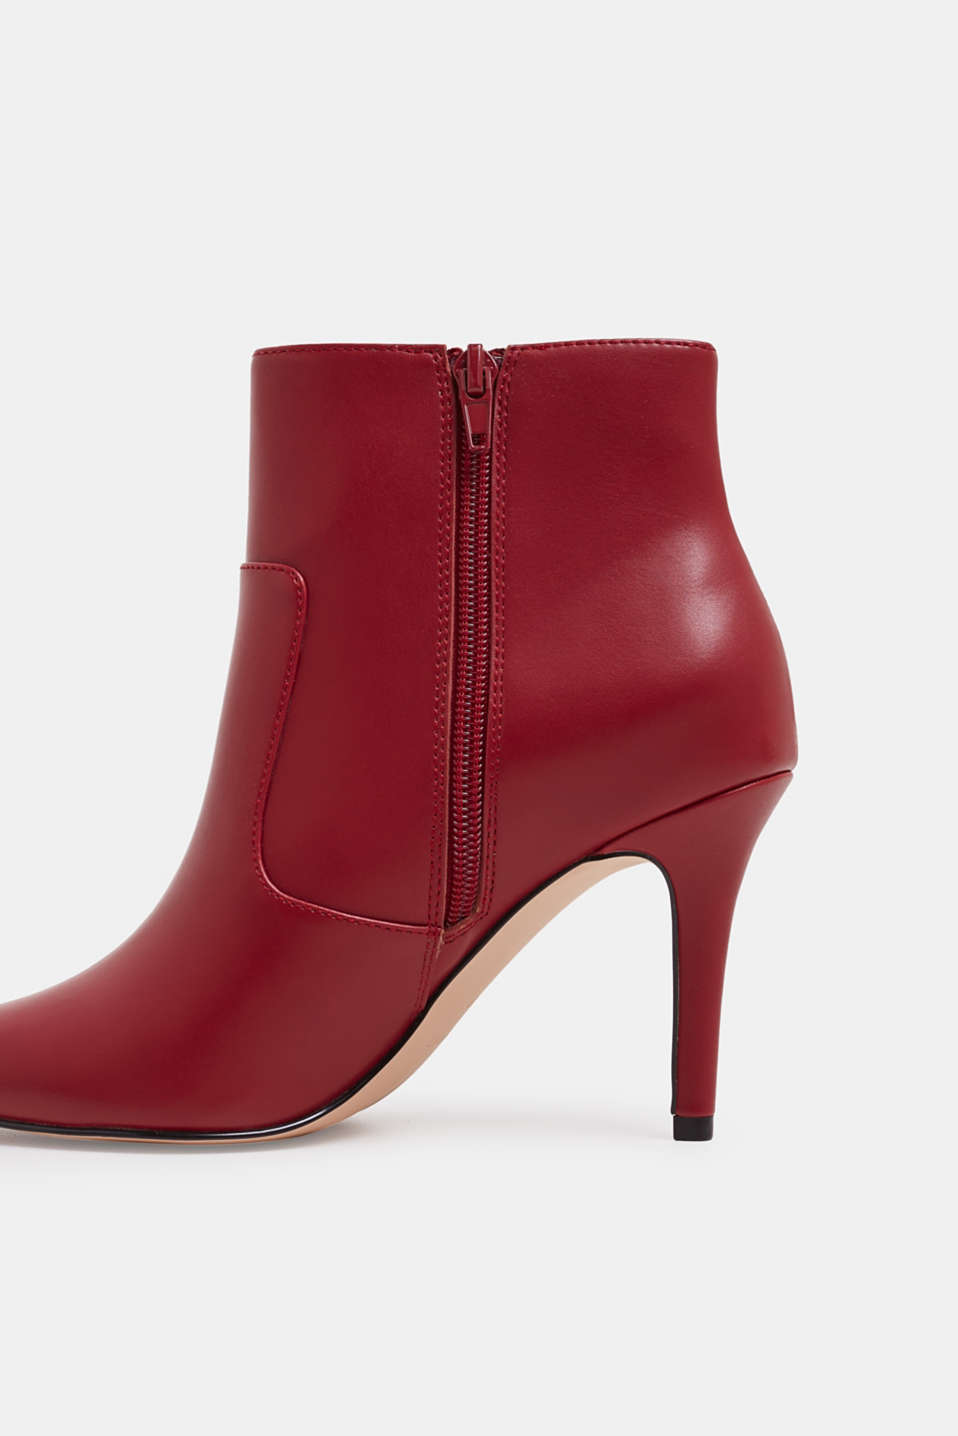 Ankle boots with kitten heel, made of faux leather, RED, detail image number 4